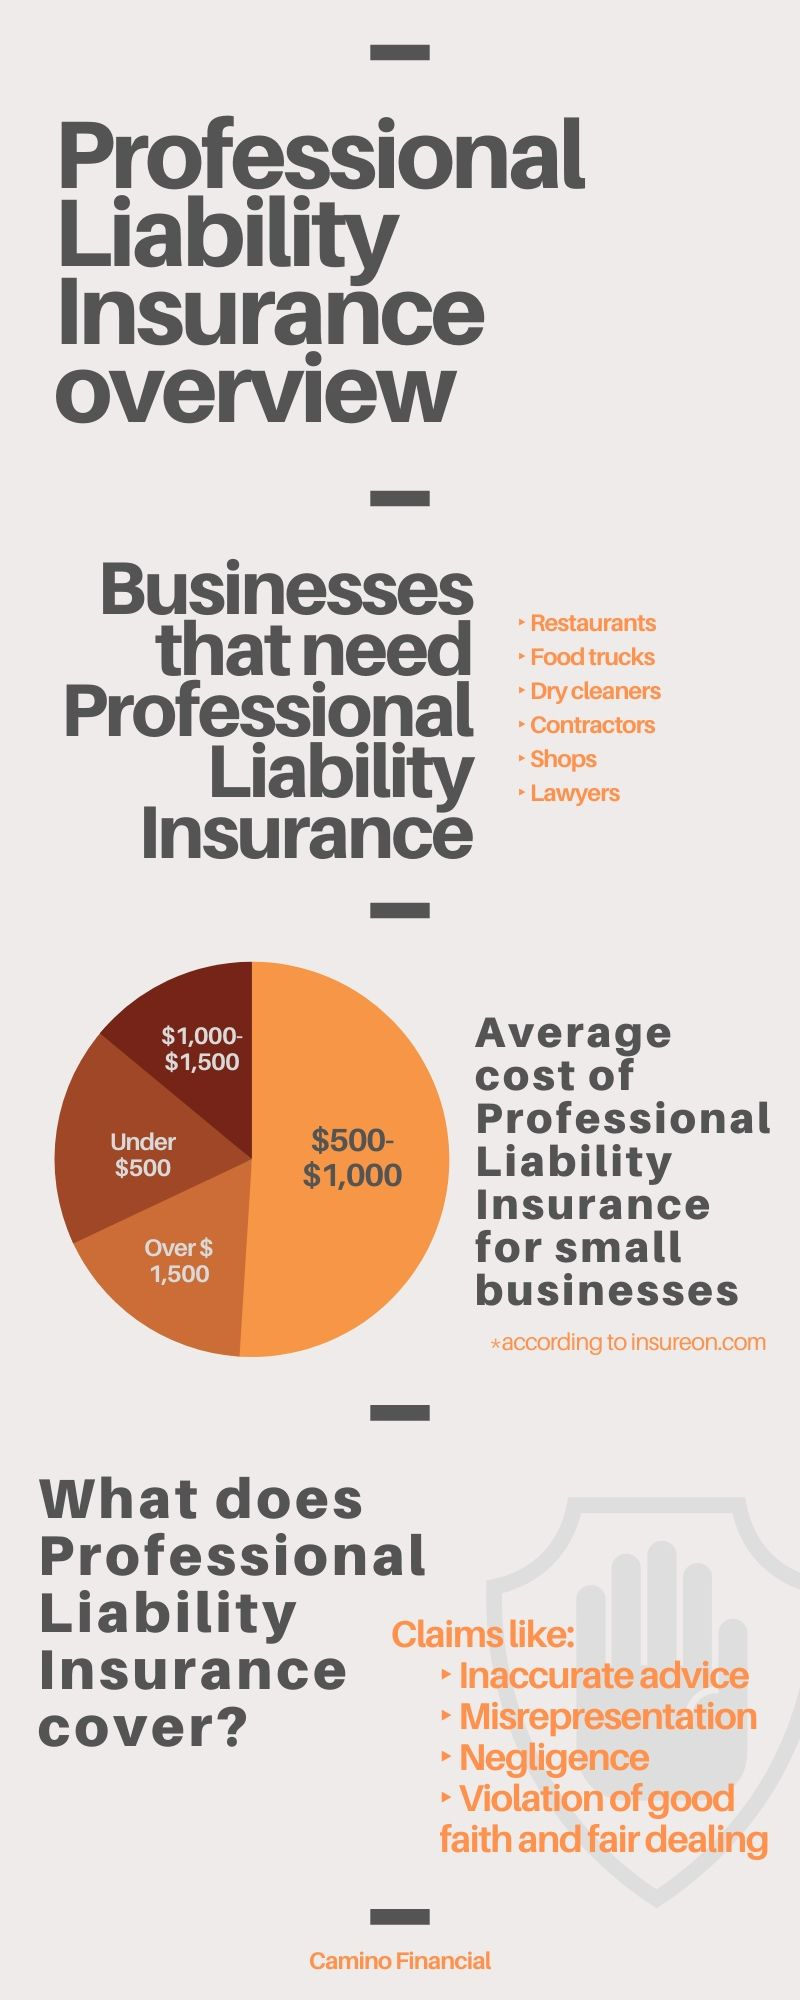 Professional Liability Insurance overview. concept: Professional Liability Insurance cost